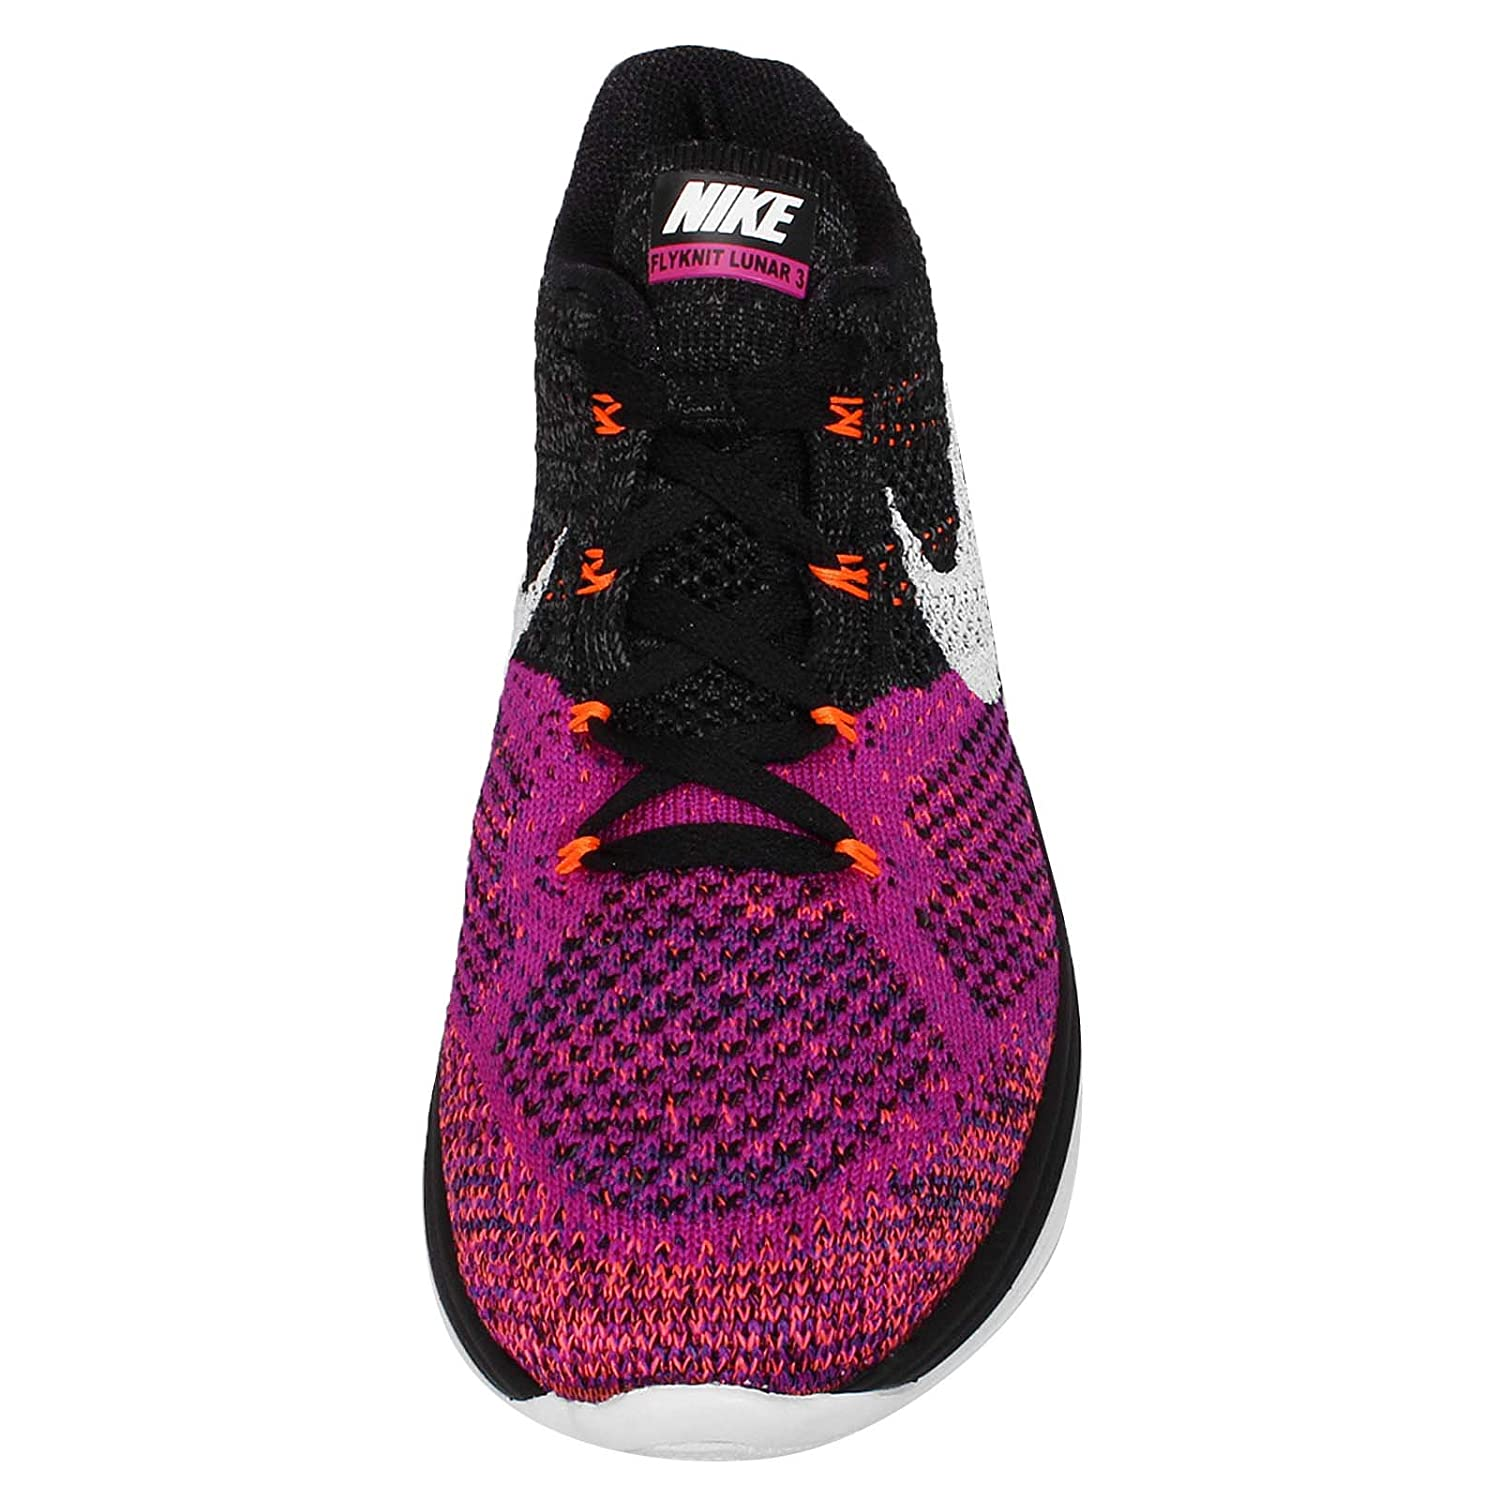 NIKE Women's Flyknit Lunar3 Running/Training Shoes B00X9XJZL0 8 B(M) US|Black/White-fuchsia Flash-hot Lava